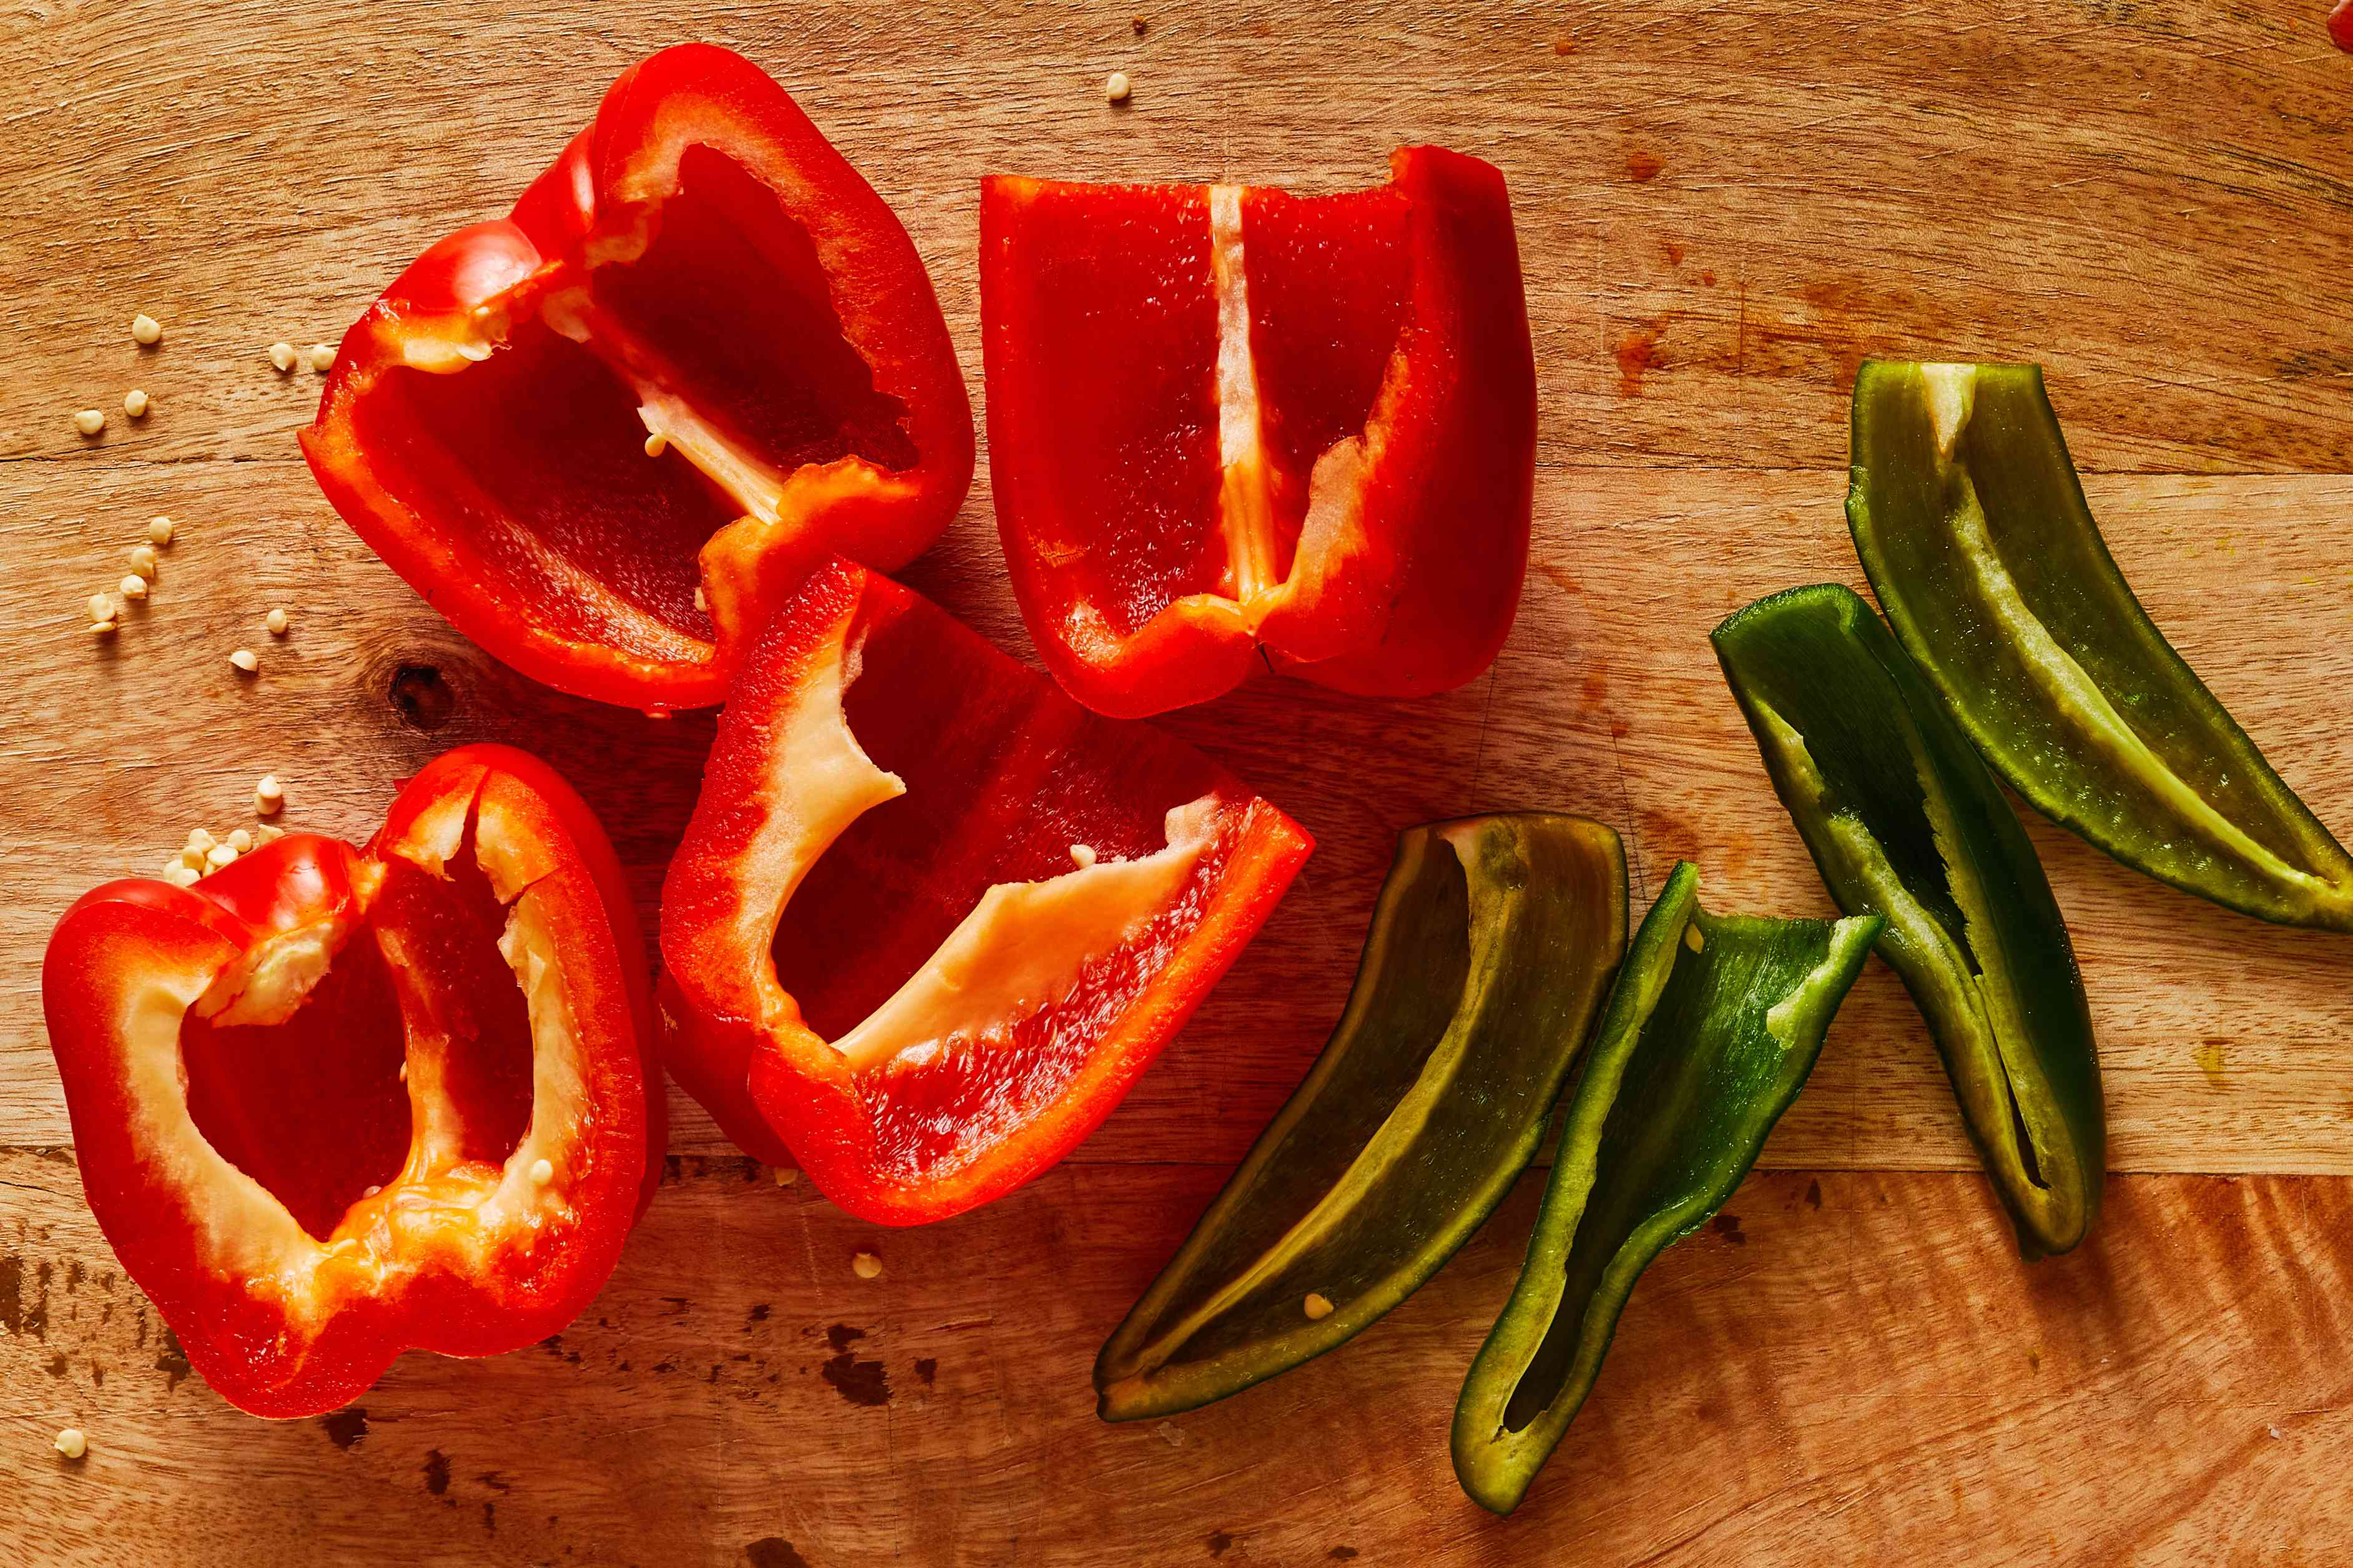 Slice the peppers in half, lengthwise, and discard the seeds and veins